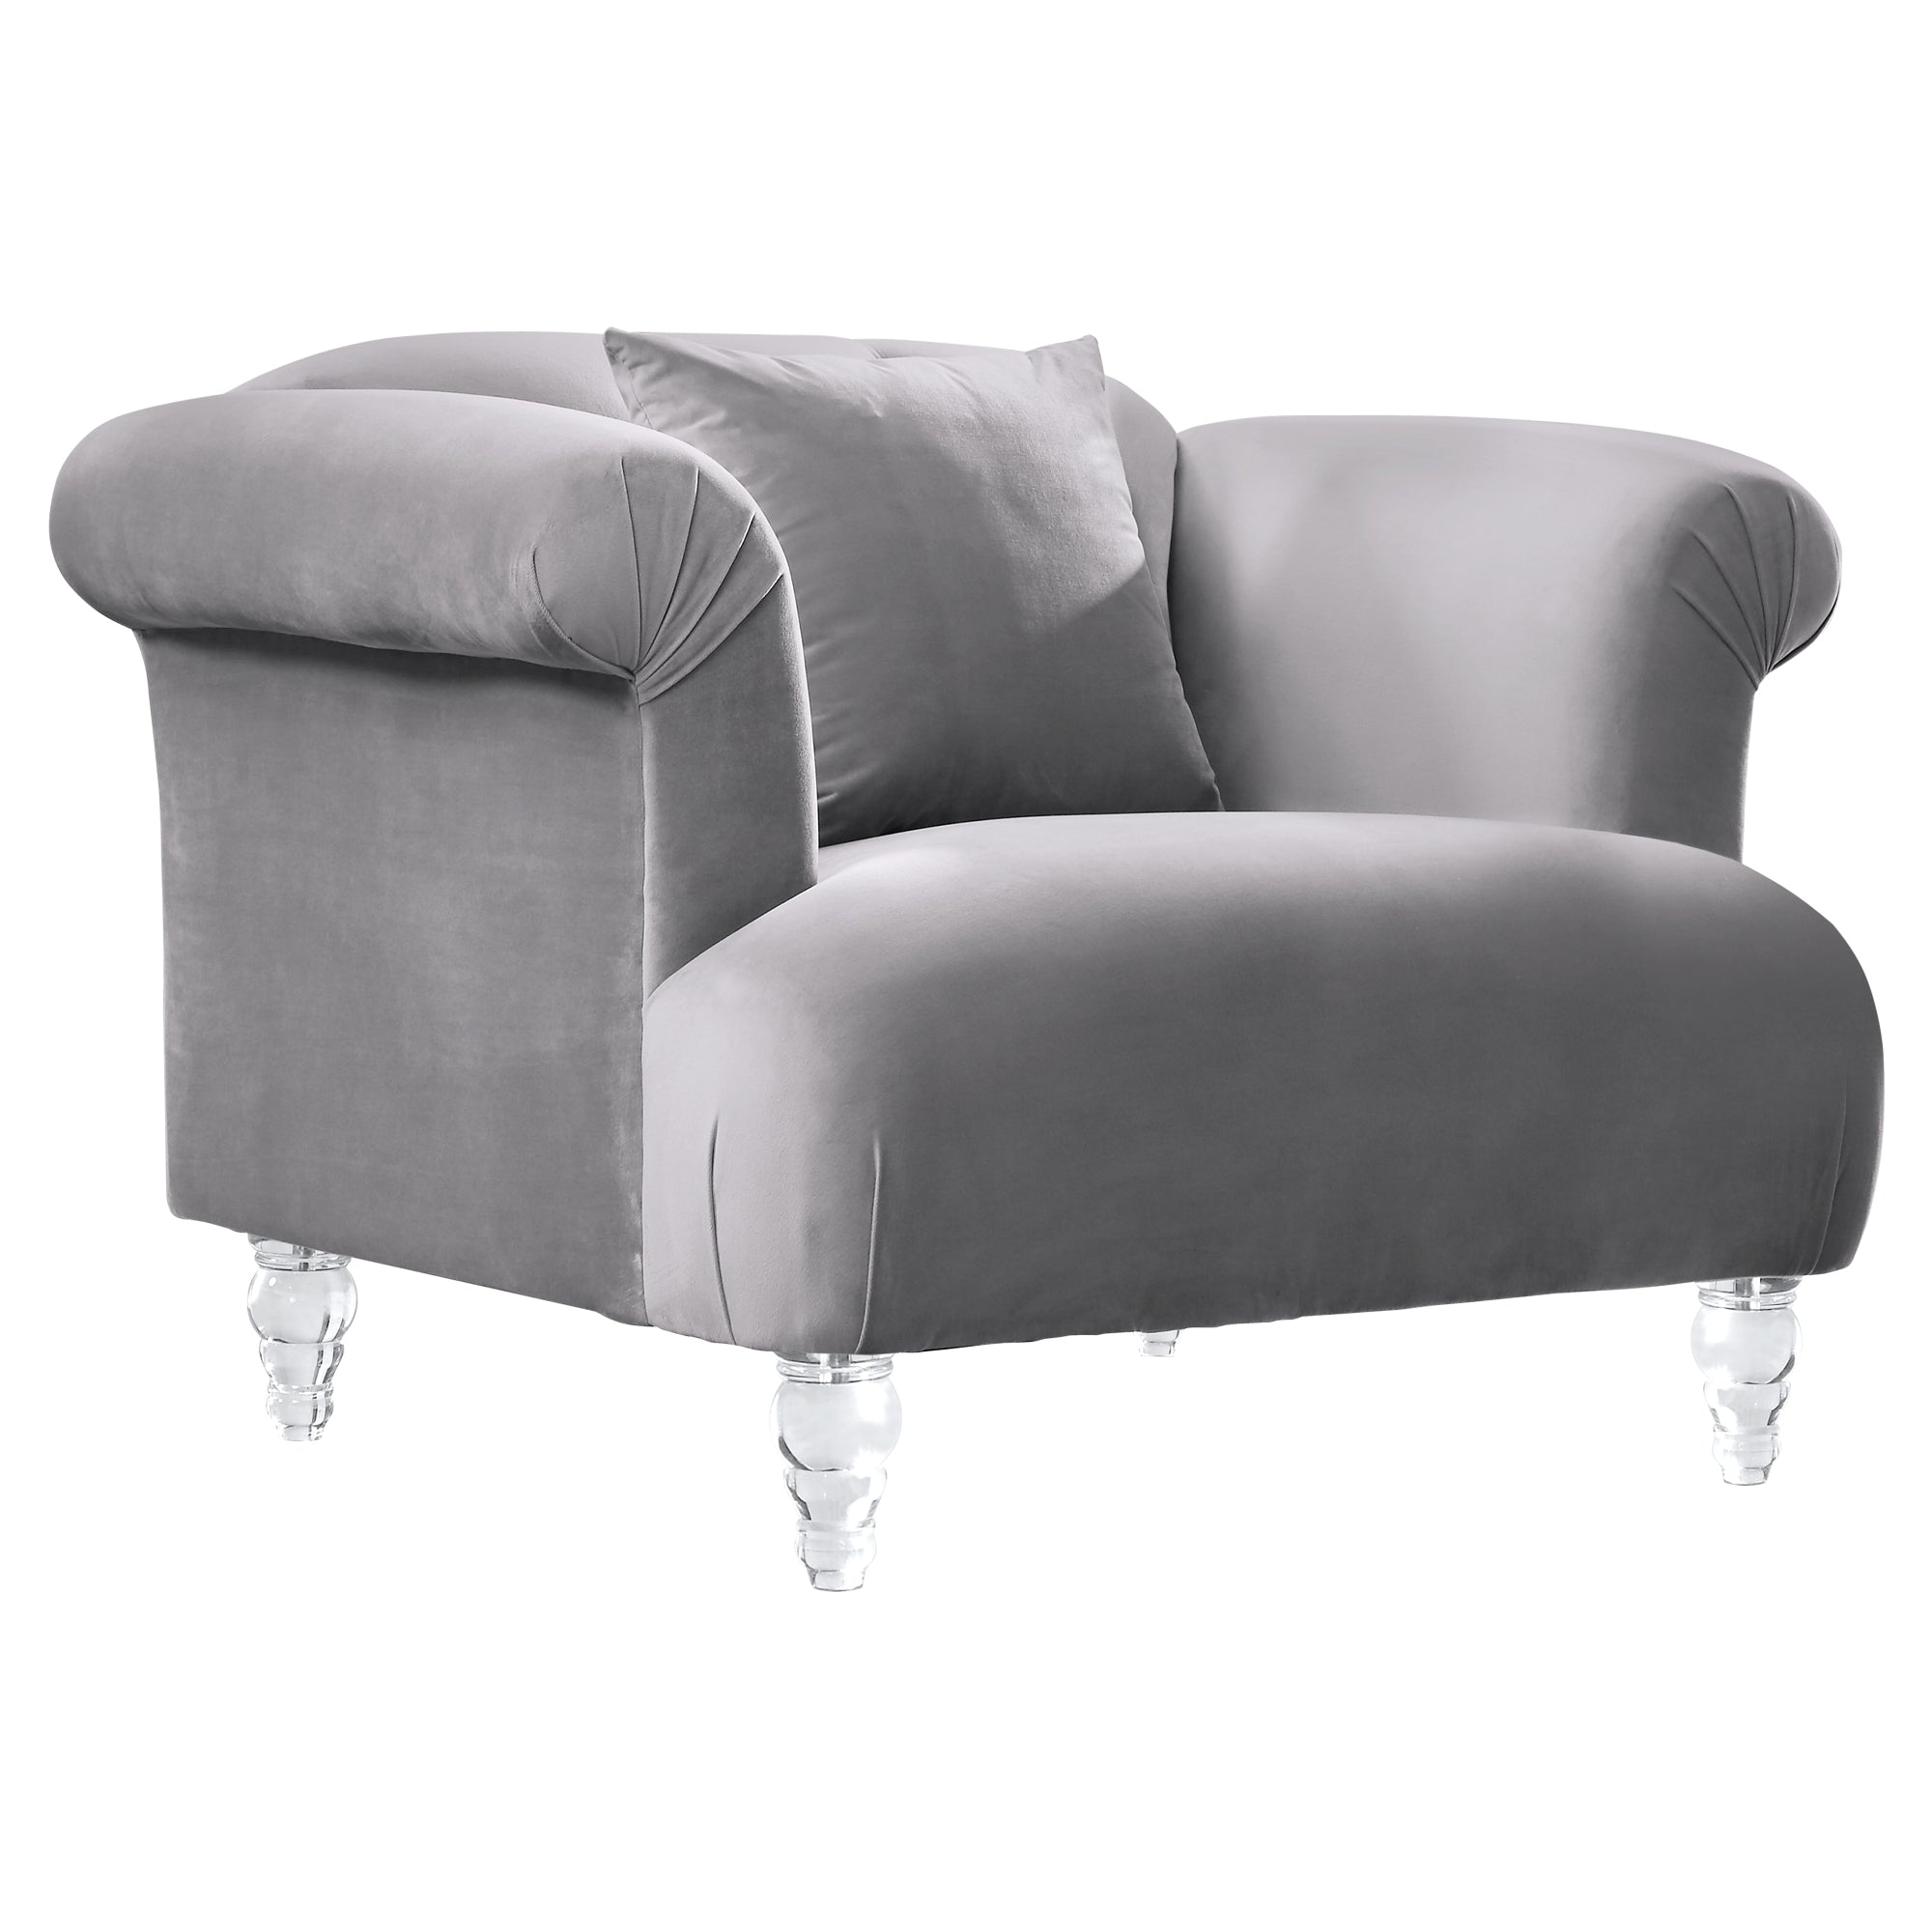 Contemporary Sofa Chair Grey Velvet Acrylic Legs 14915 Product Photo